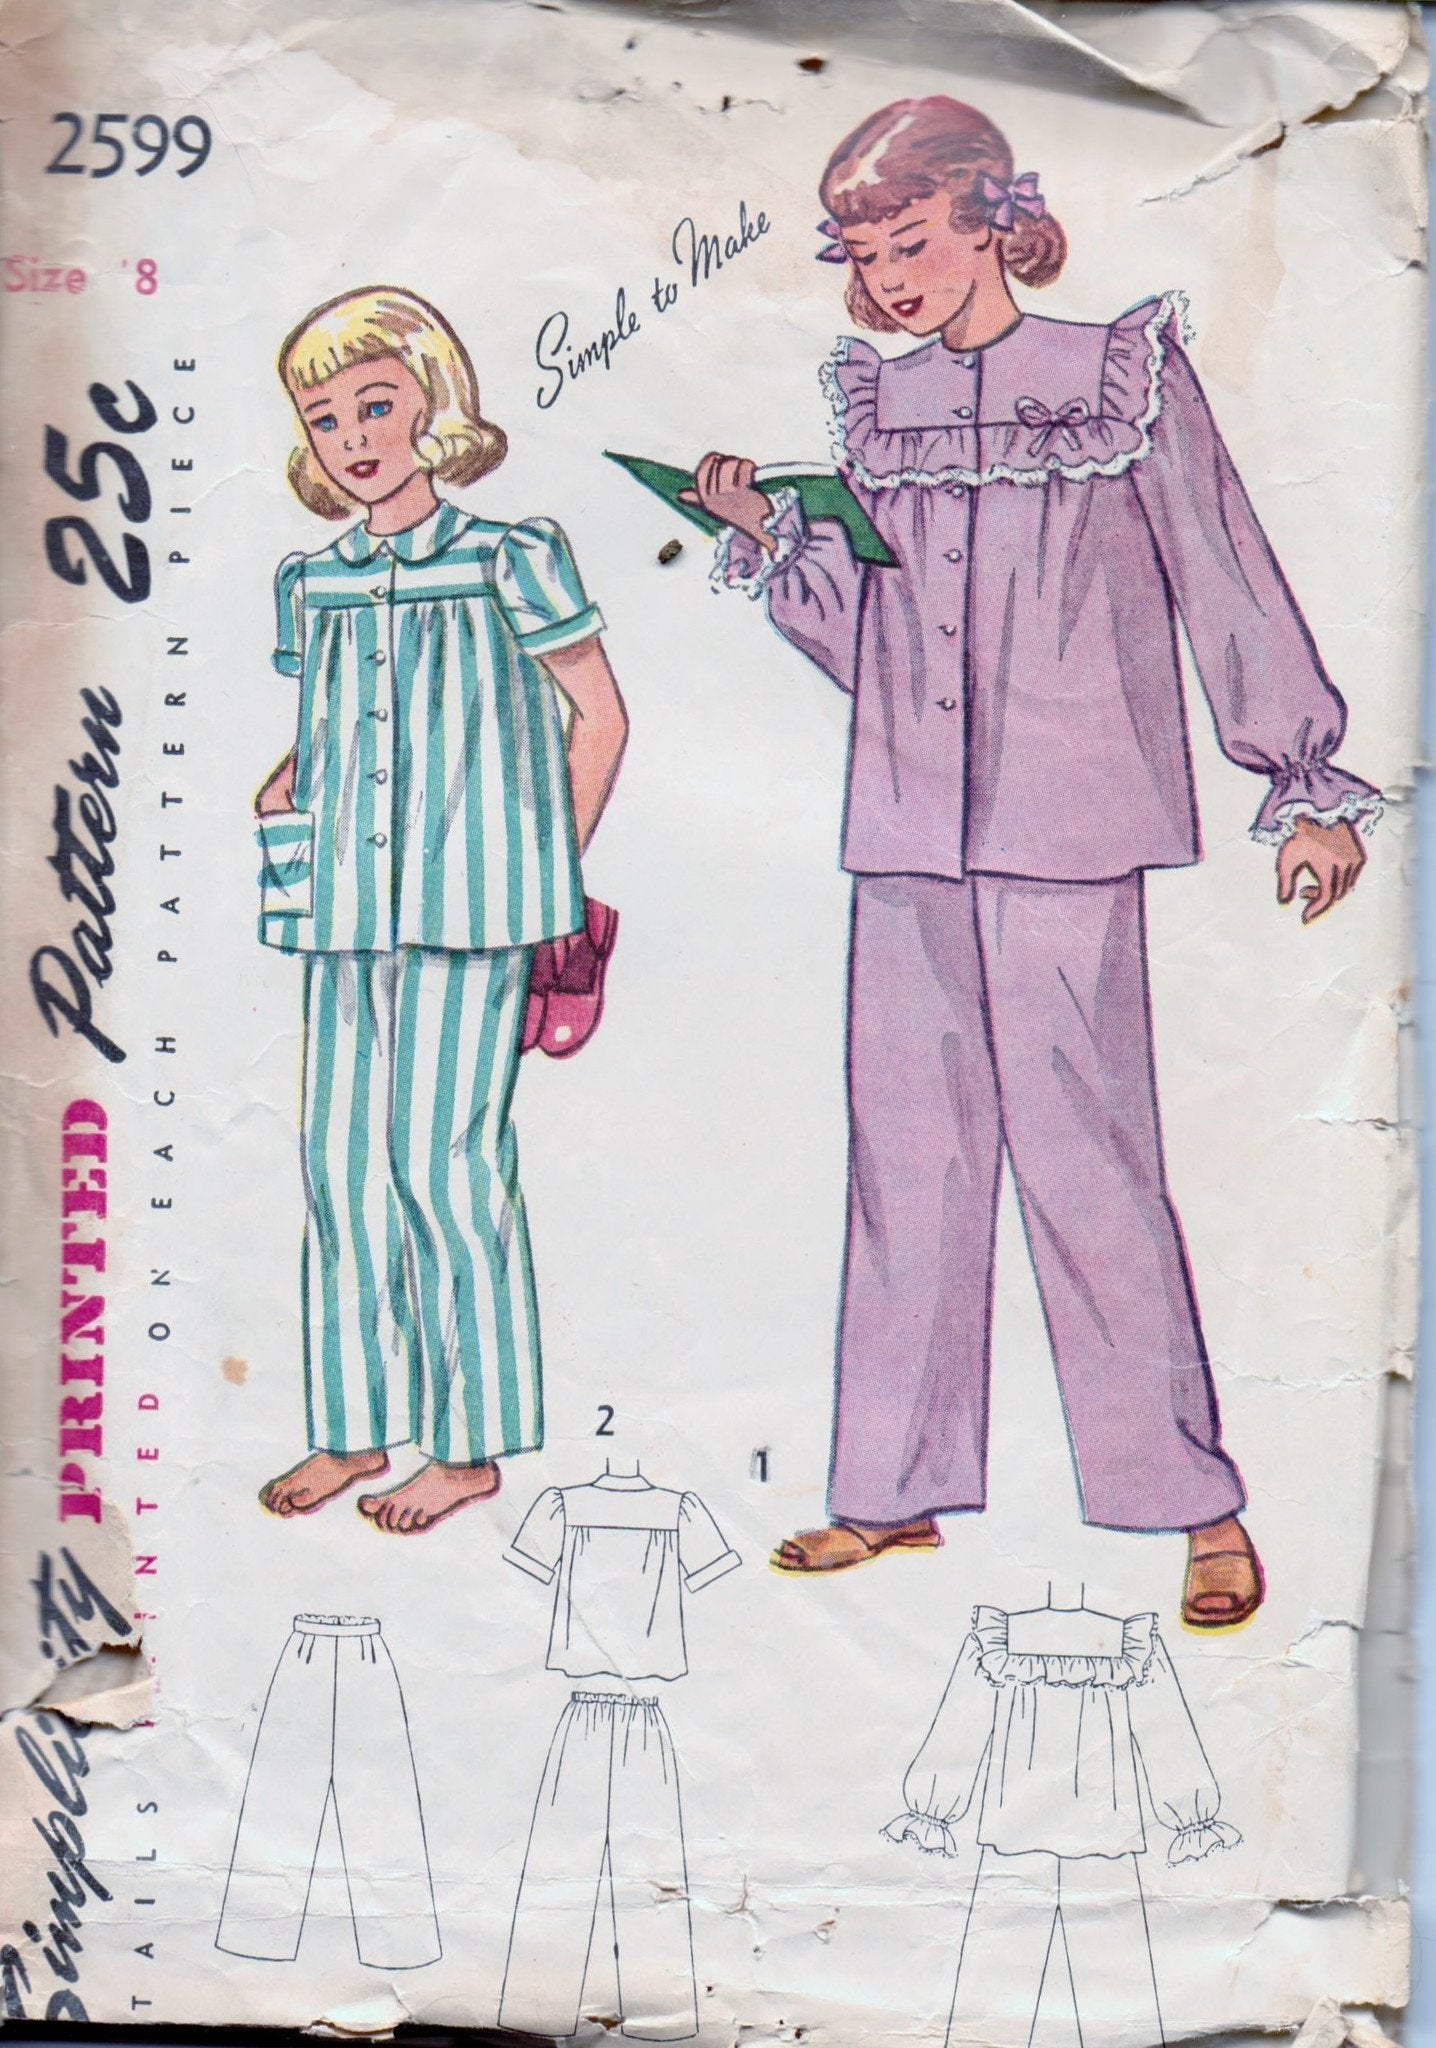 Simplicity 2599 Young Girls Two Piece Pajamas PJ's Vintage 1940's Sewing Pattern - VintageStitching - Vintage Sewing Patterns